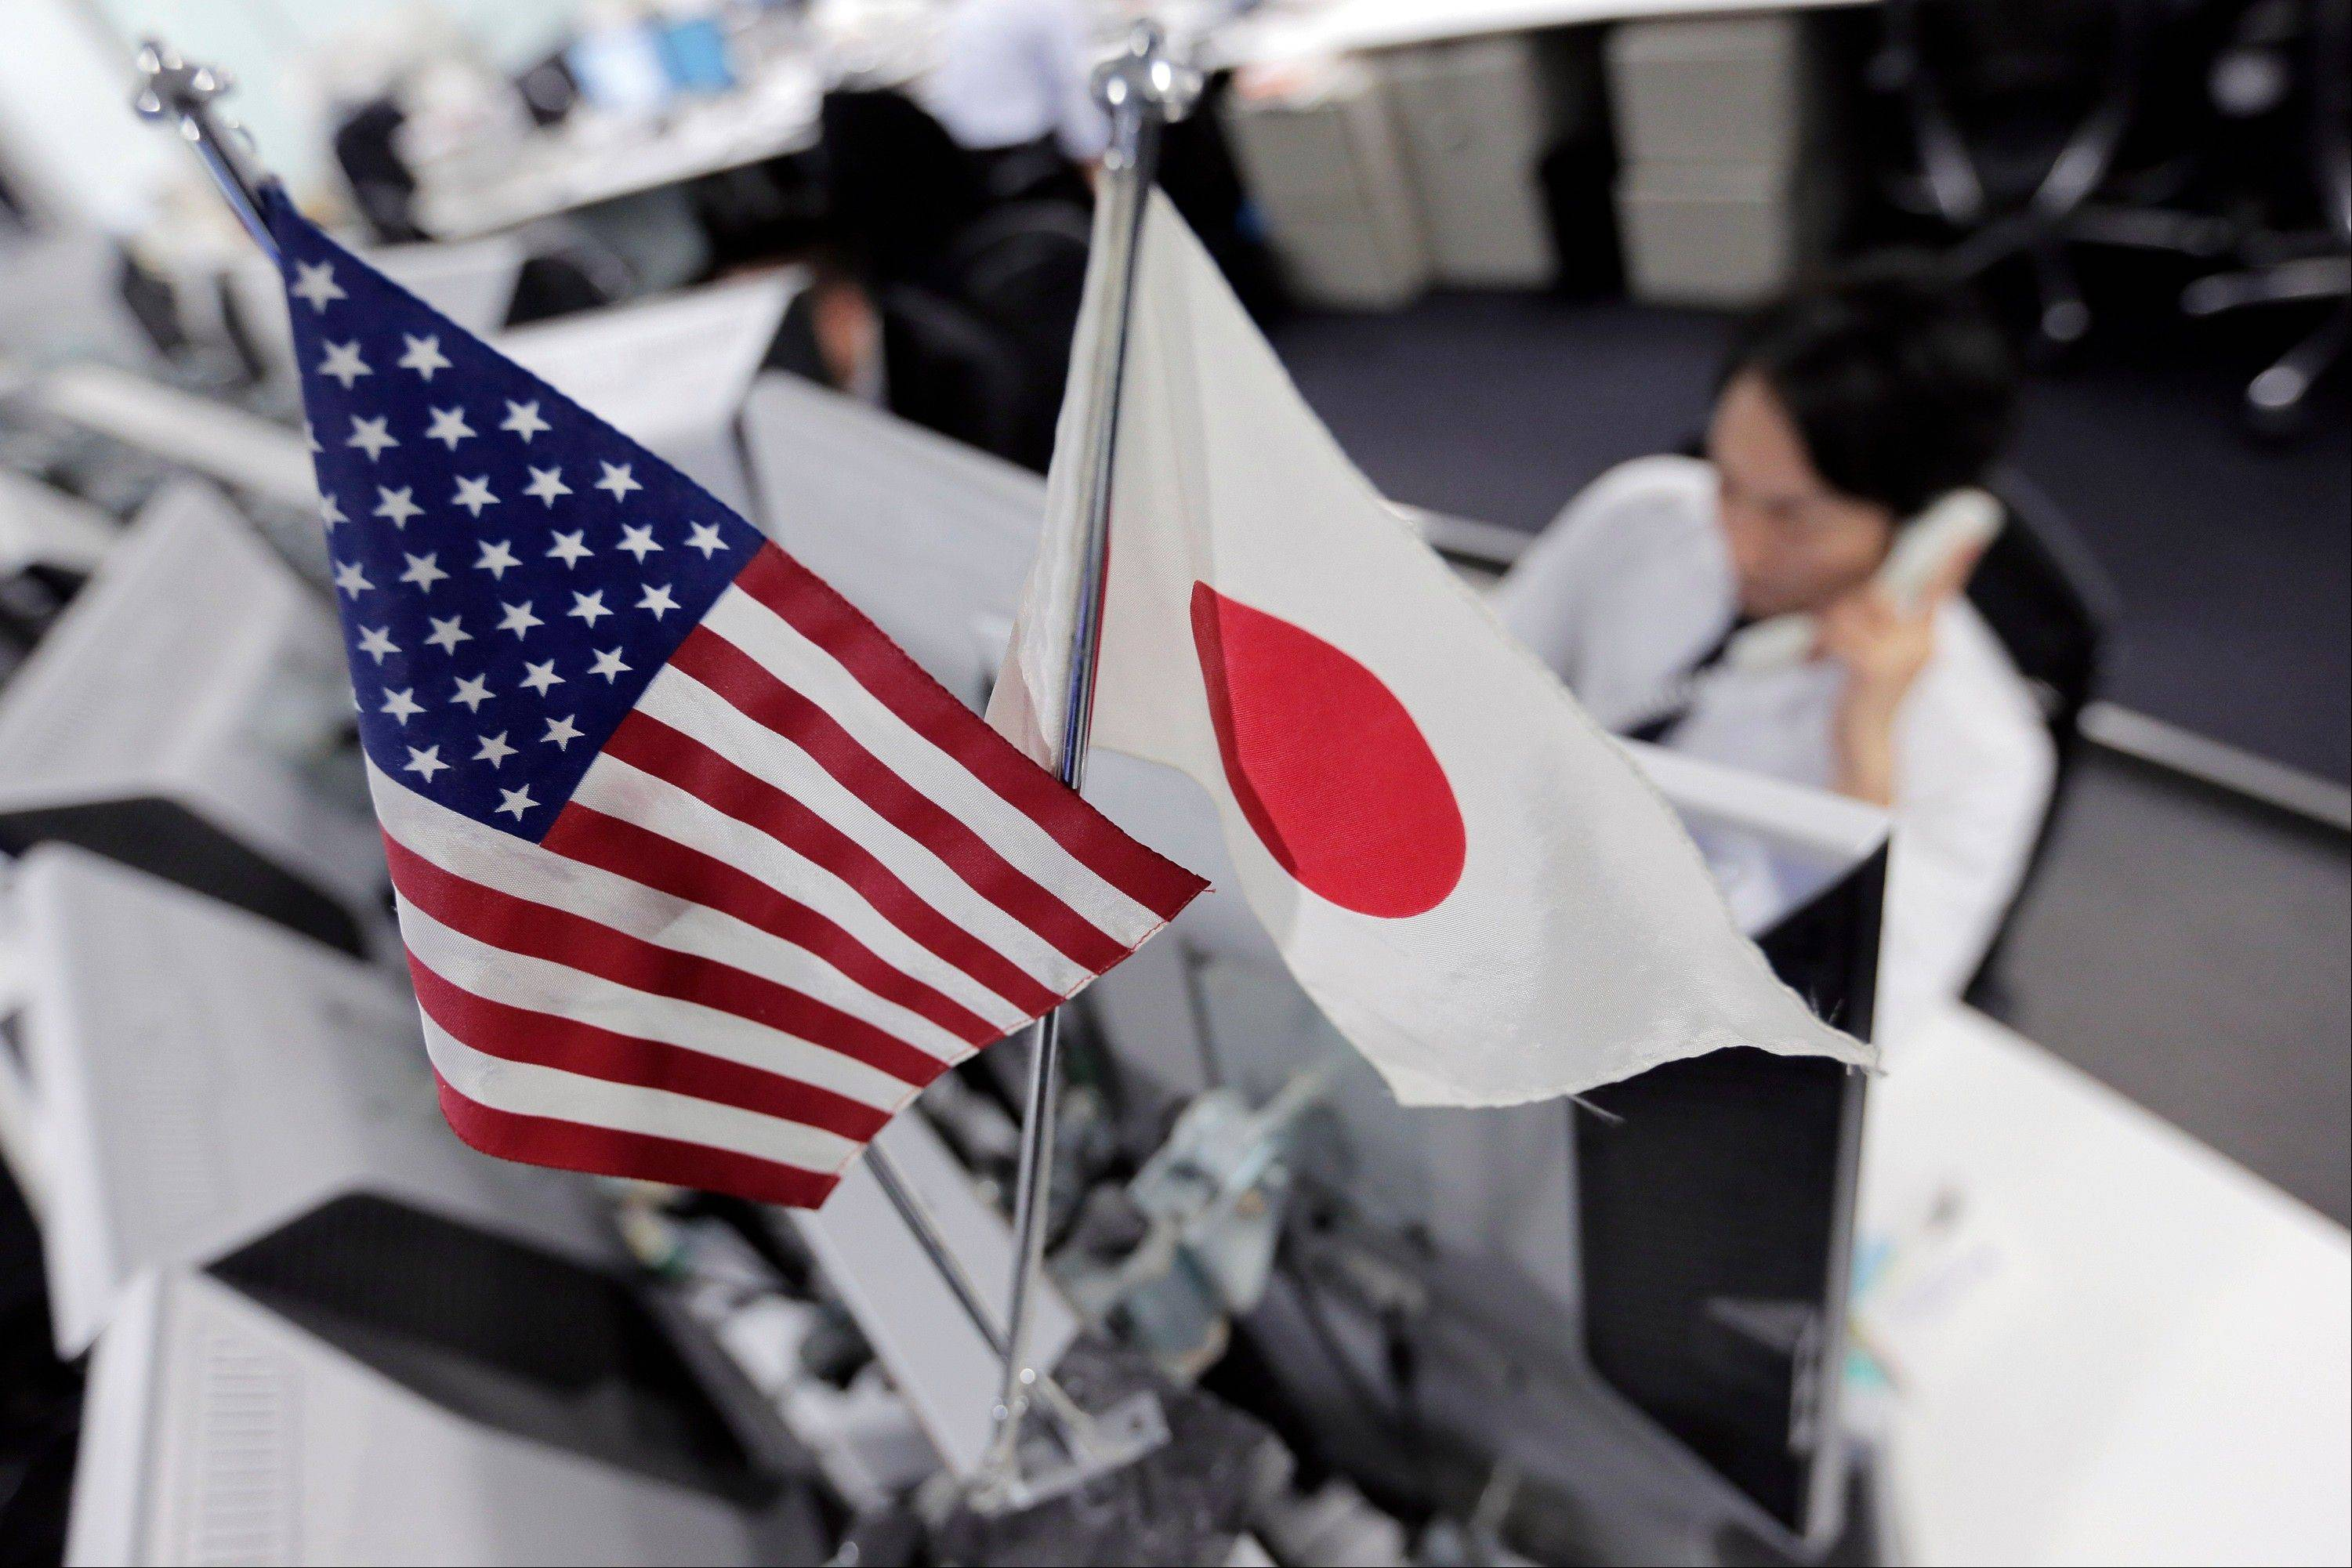 The Japanese and U.S. governments will incorporate a policy on how to respond to cyberattacks in the Japan-U.S. defense cooperation guidelines, a move aimed at countering a possible attack by China, according to Japanese government sources. Under the new policy, the Self-Defense Forces and the U.S. military would jointly respond if Japan�s defense computer system came under a cyberattack.